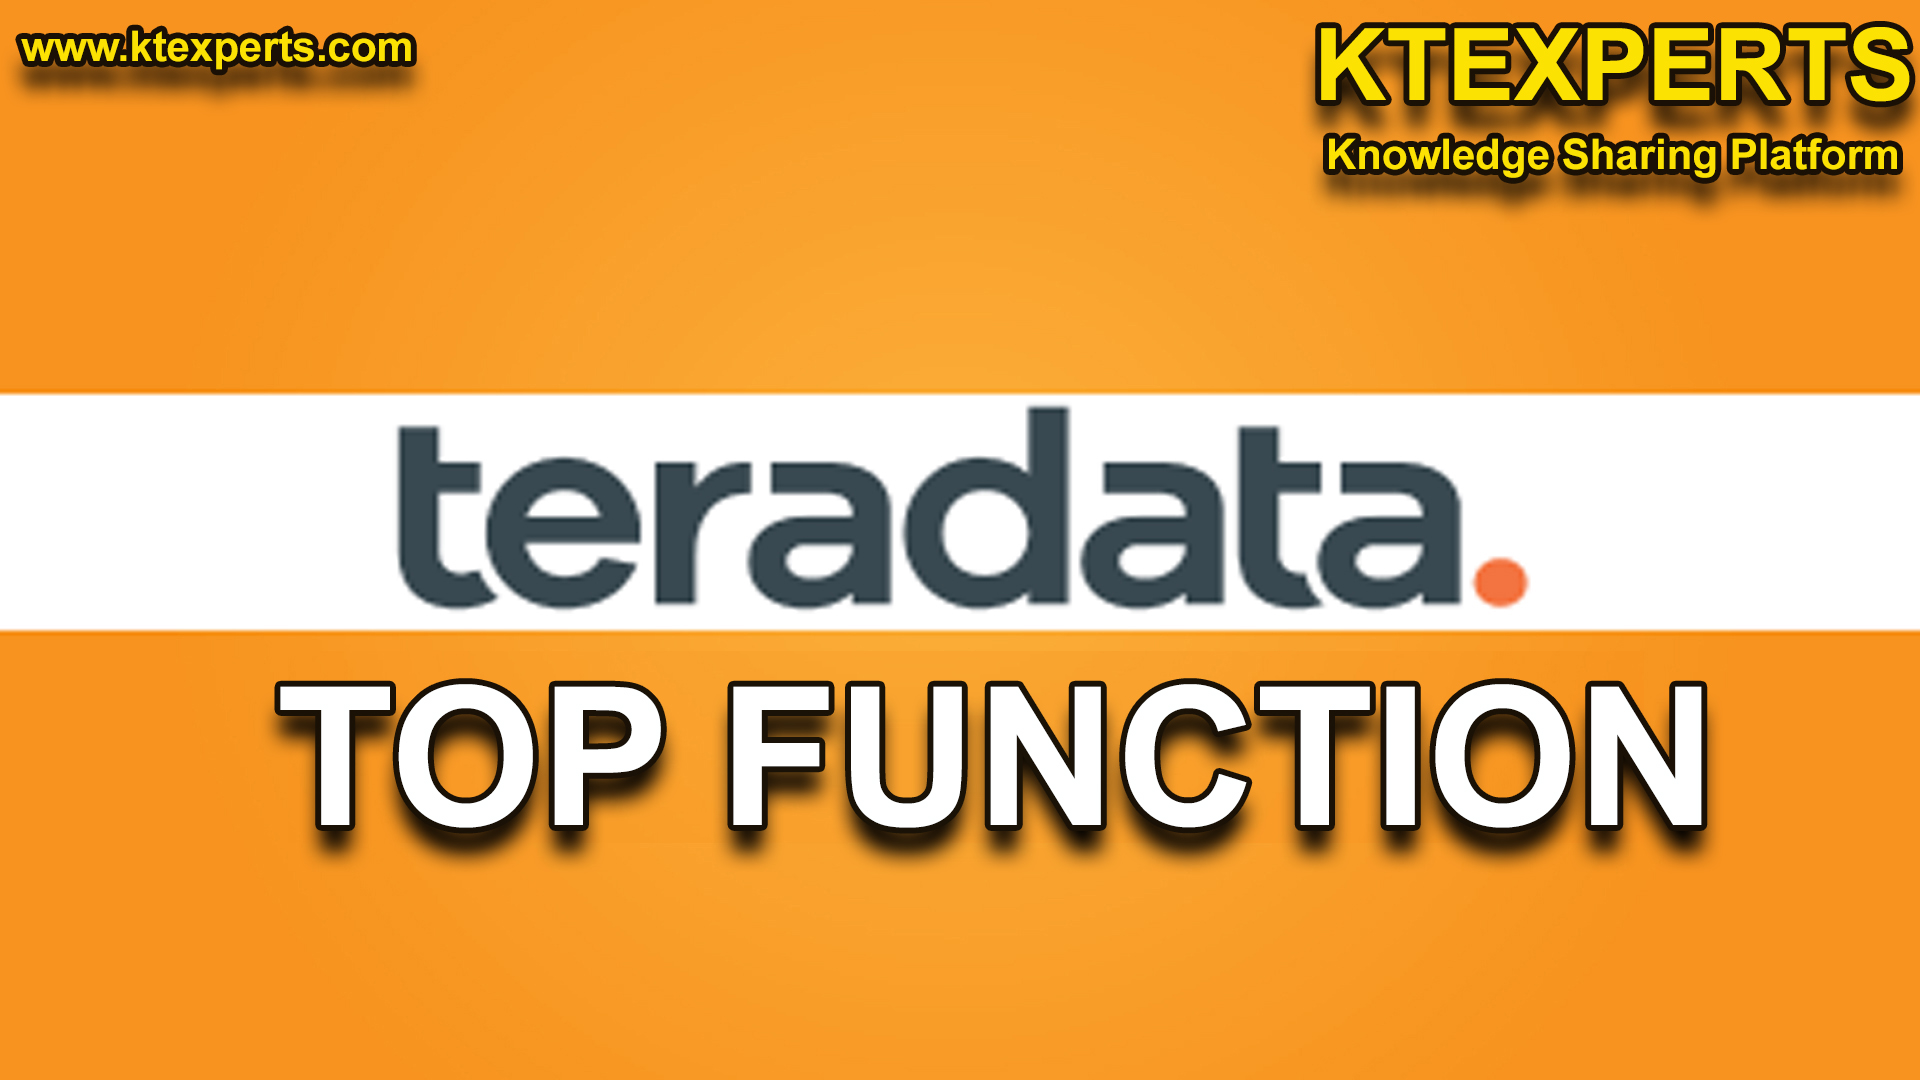 TOP FUNCTION in TERADATA